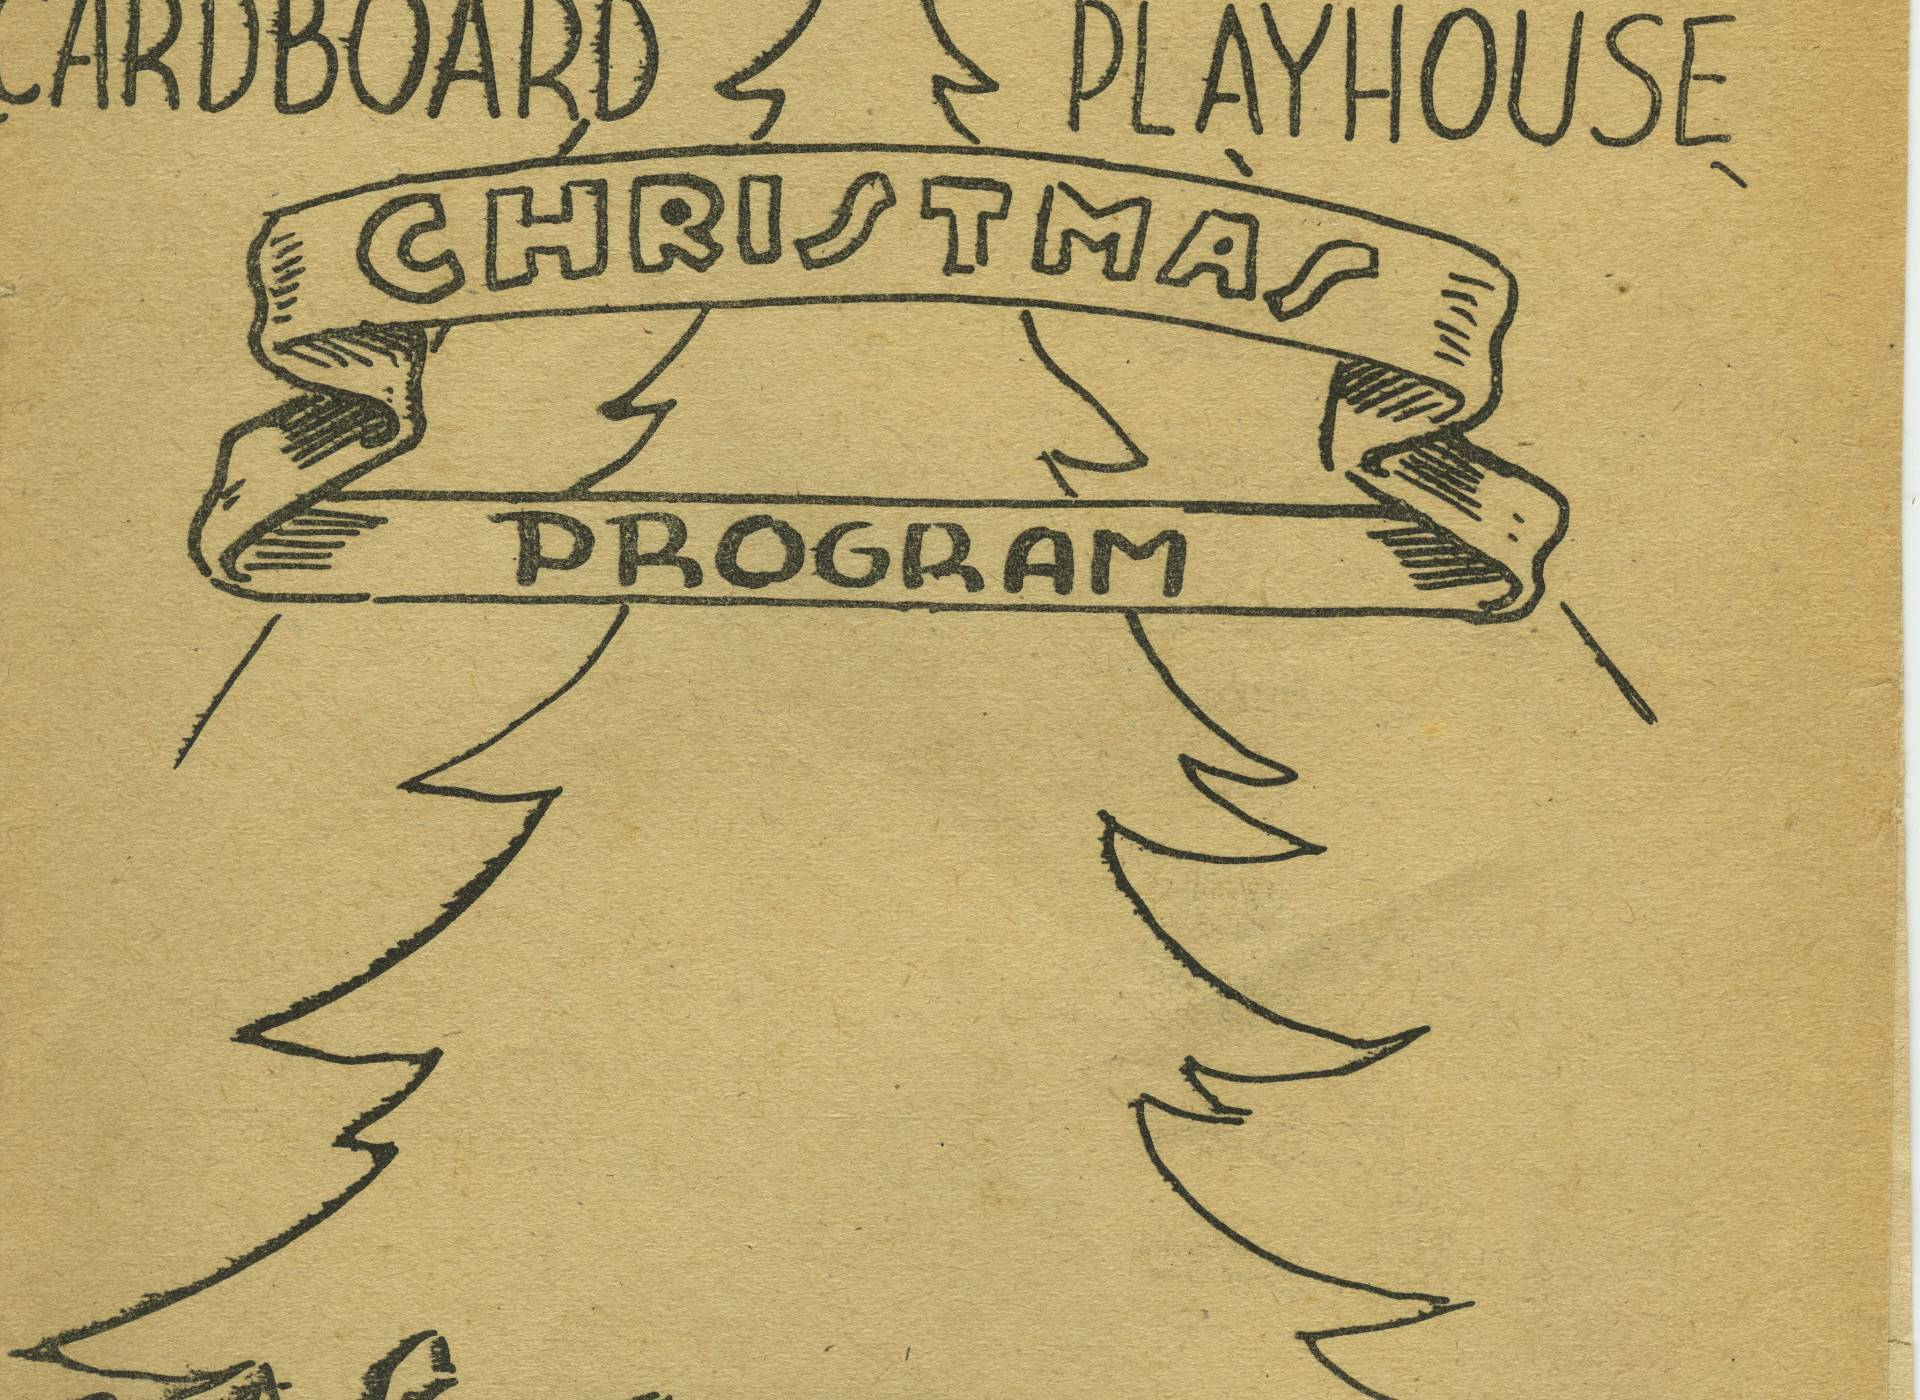 Christmas Program from Stalag XVIIB